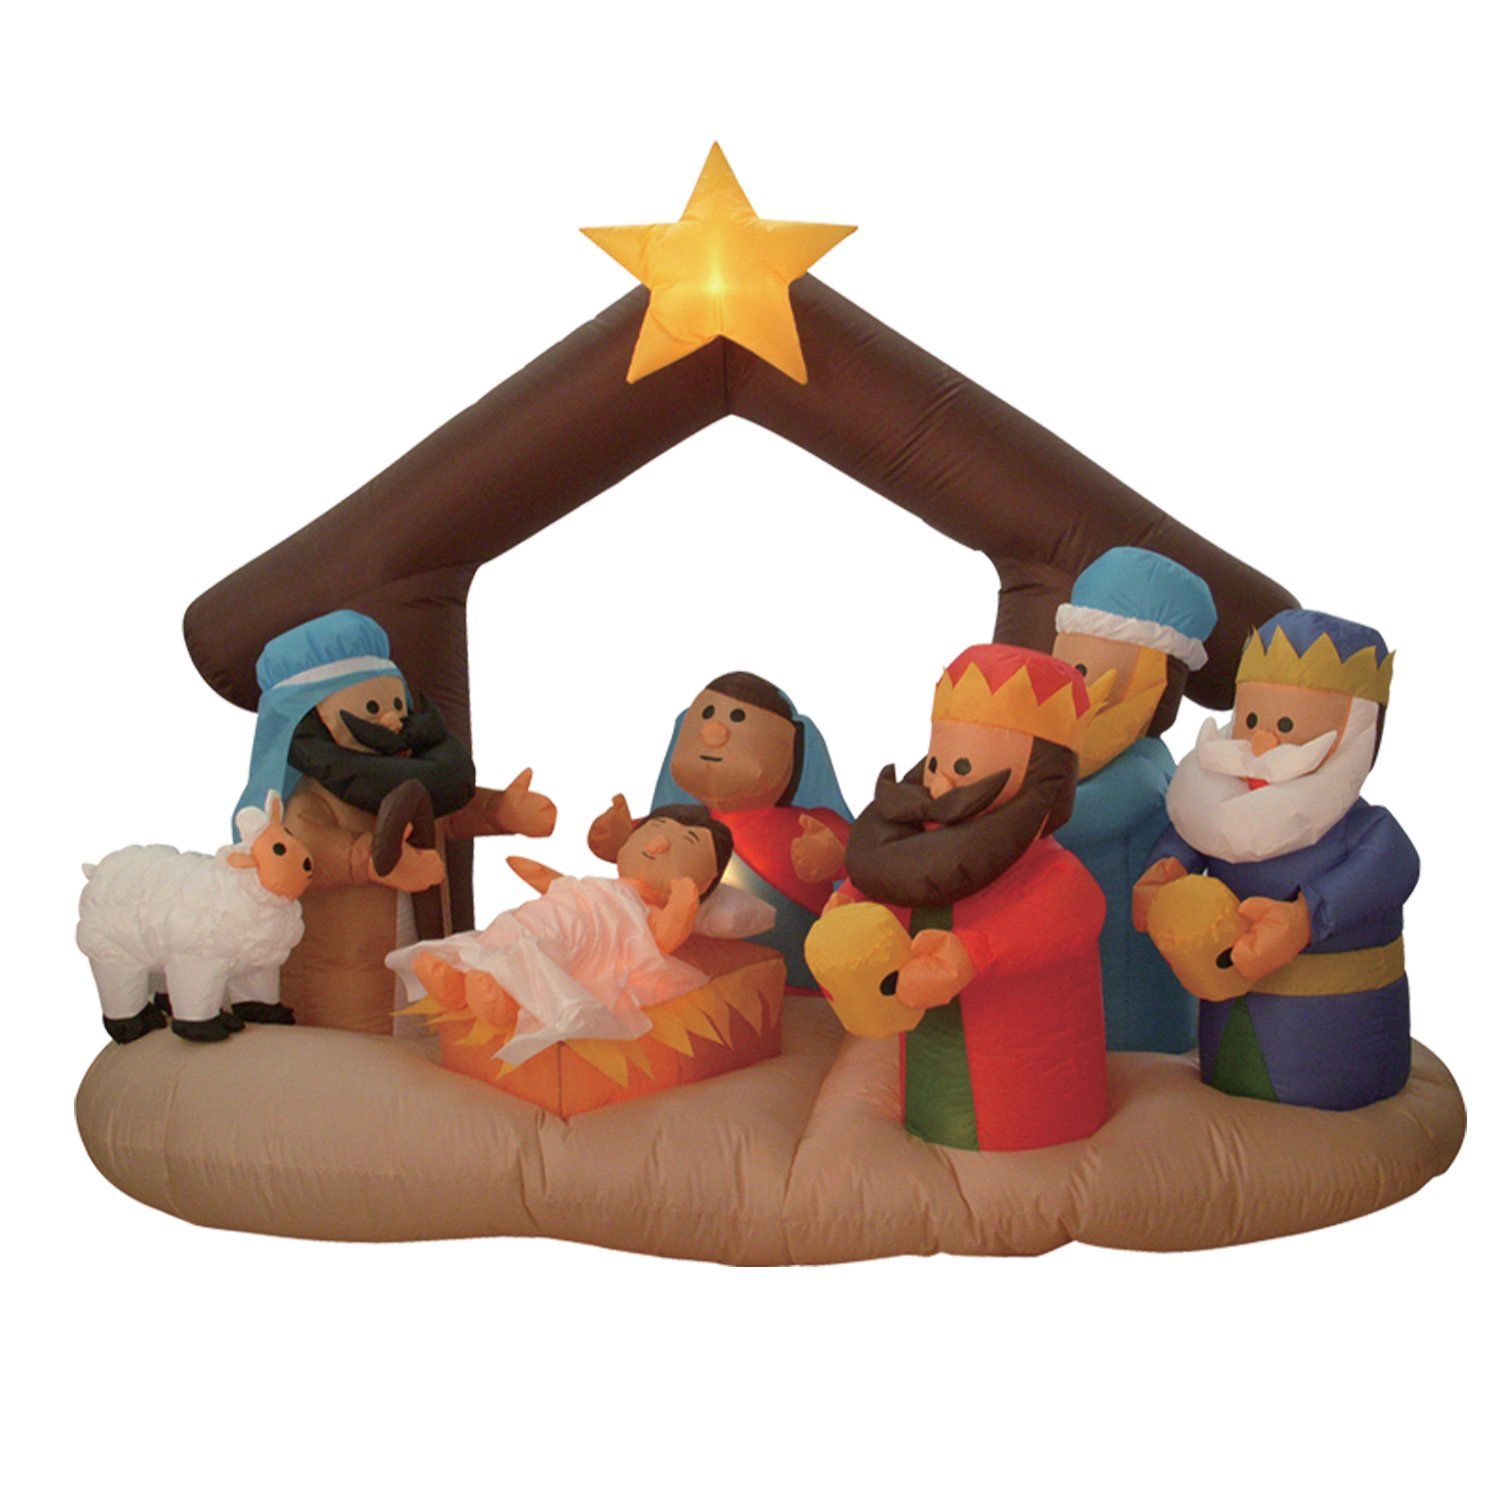 amazoncom 6 foot christmas inflatable nativity scene with three kings party decoration home kitchen - Outdoor Christmas Decorations Nativity Scene